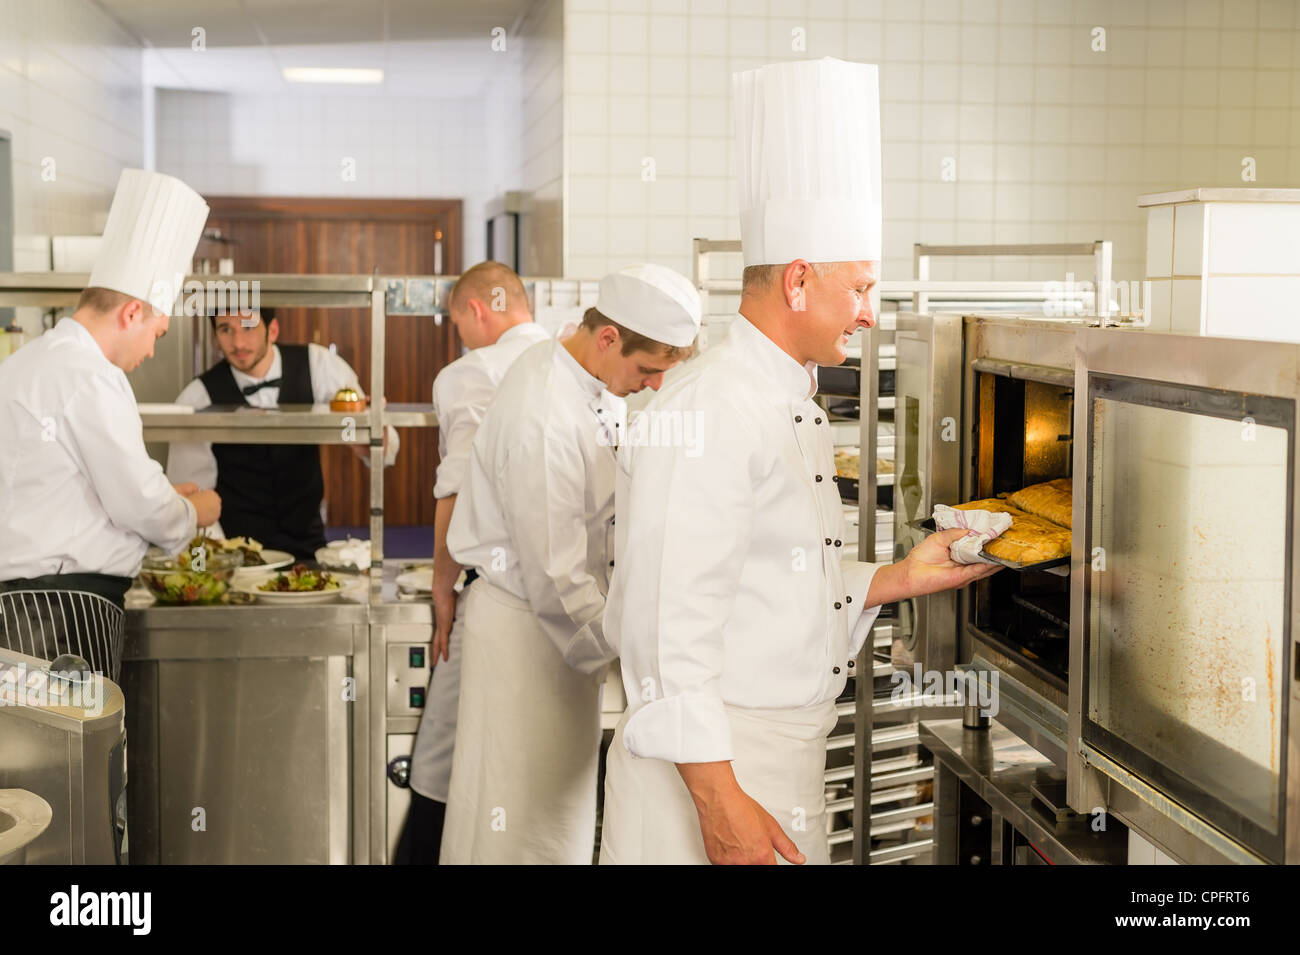 Exterior: Group Of Cooks In Professional Kitchen Prepare Meals